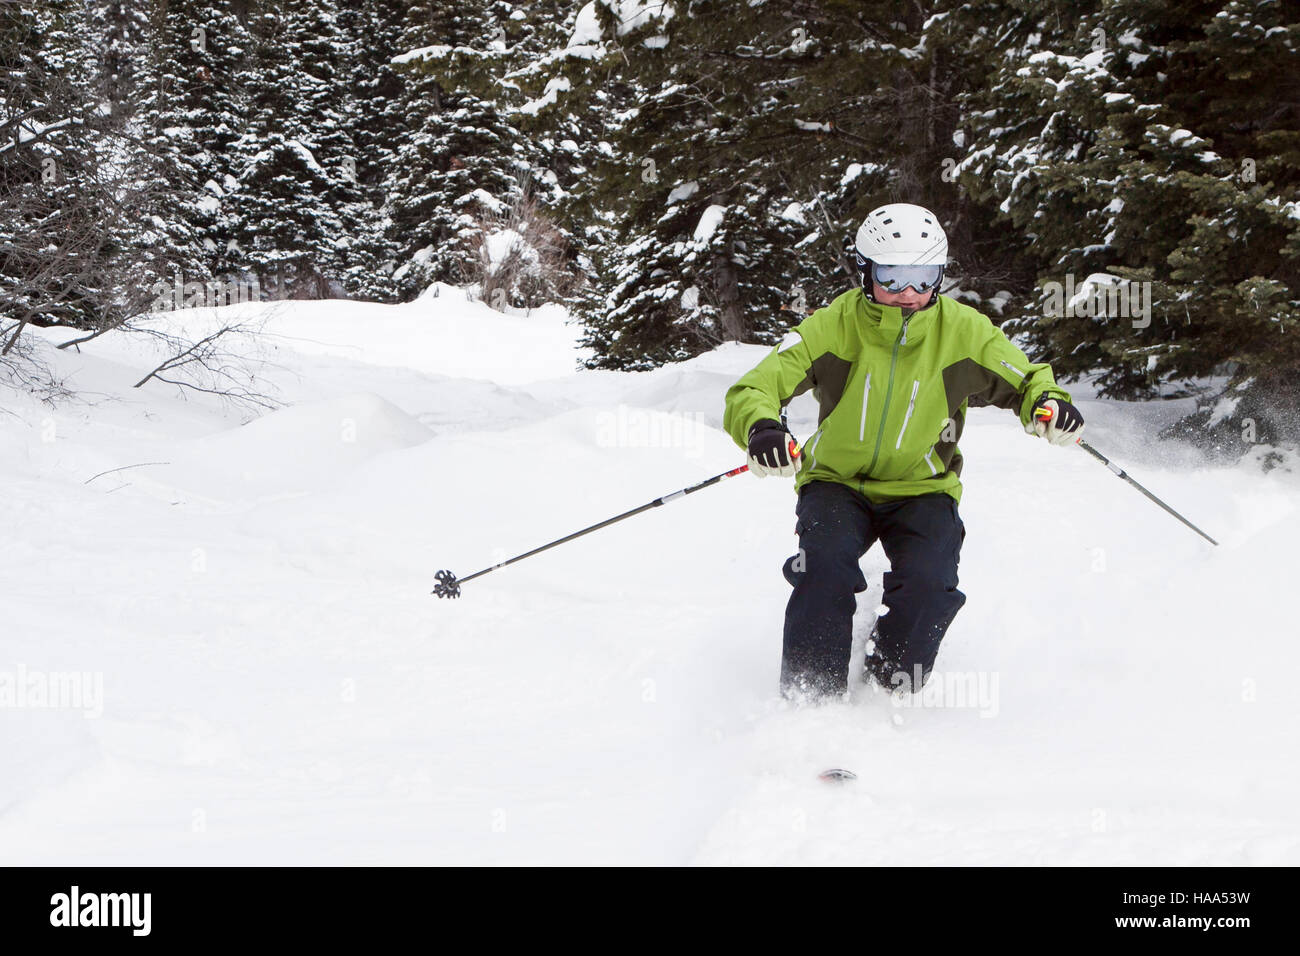 Skier skiing in deep powder in the woods - Stock Image